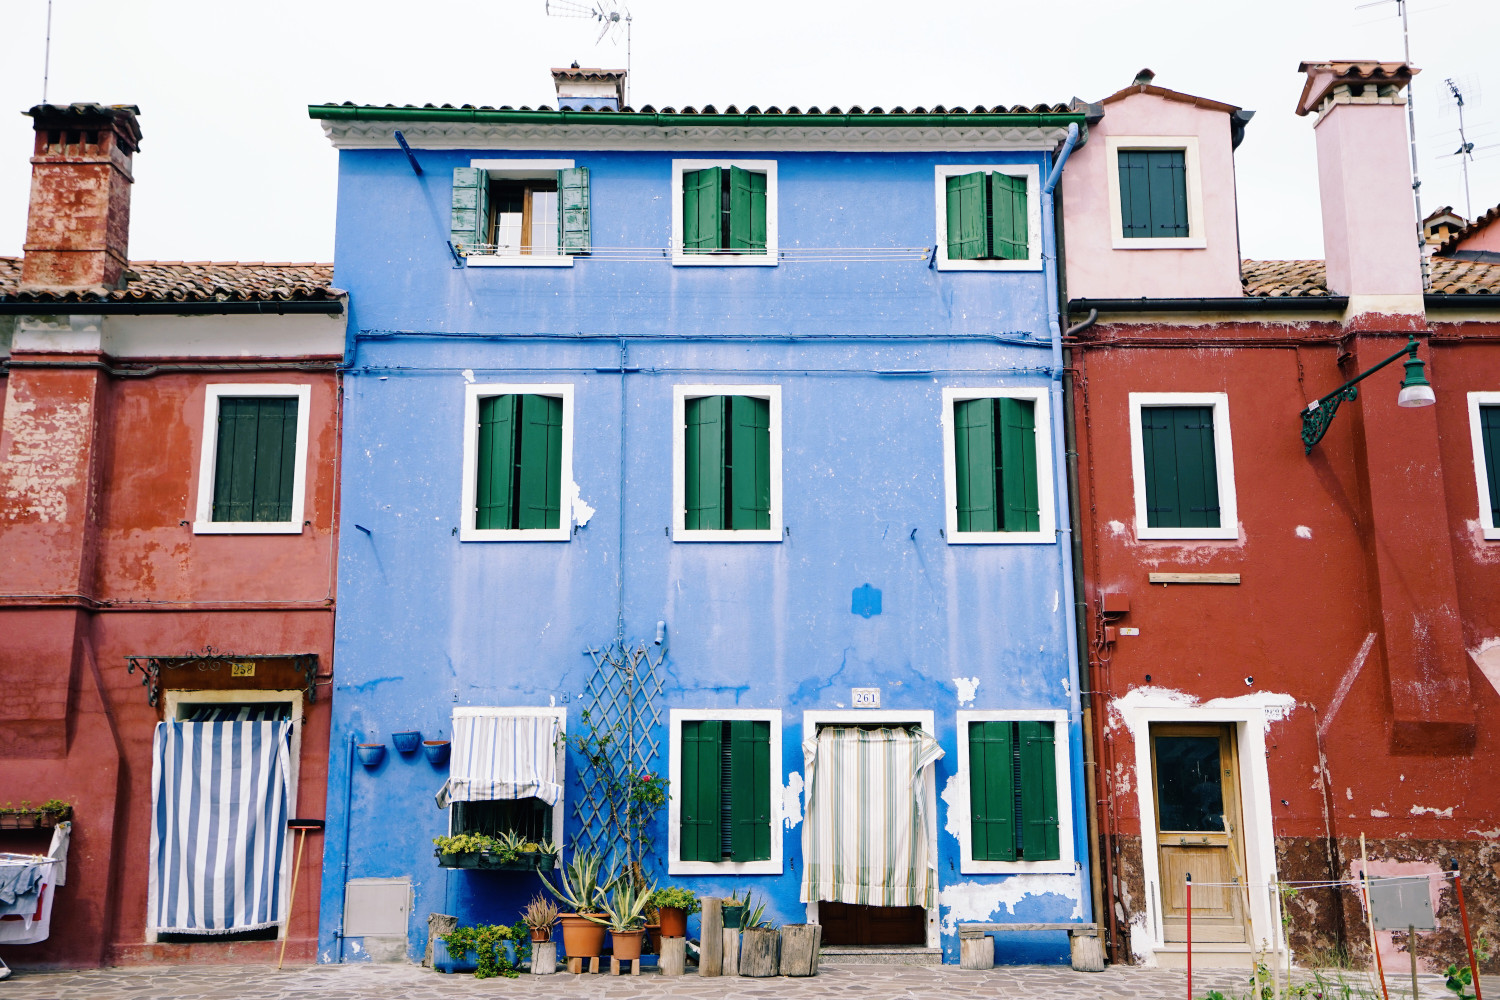 burano-house-facades-dante-vincent-photography